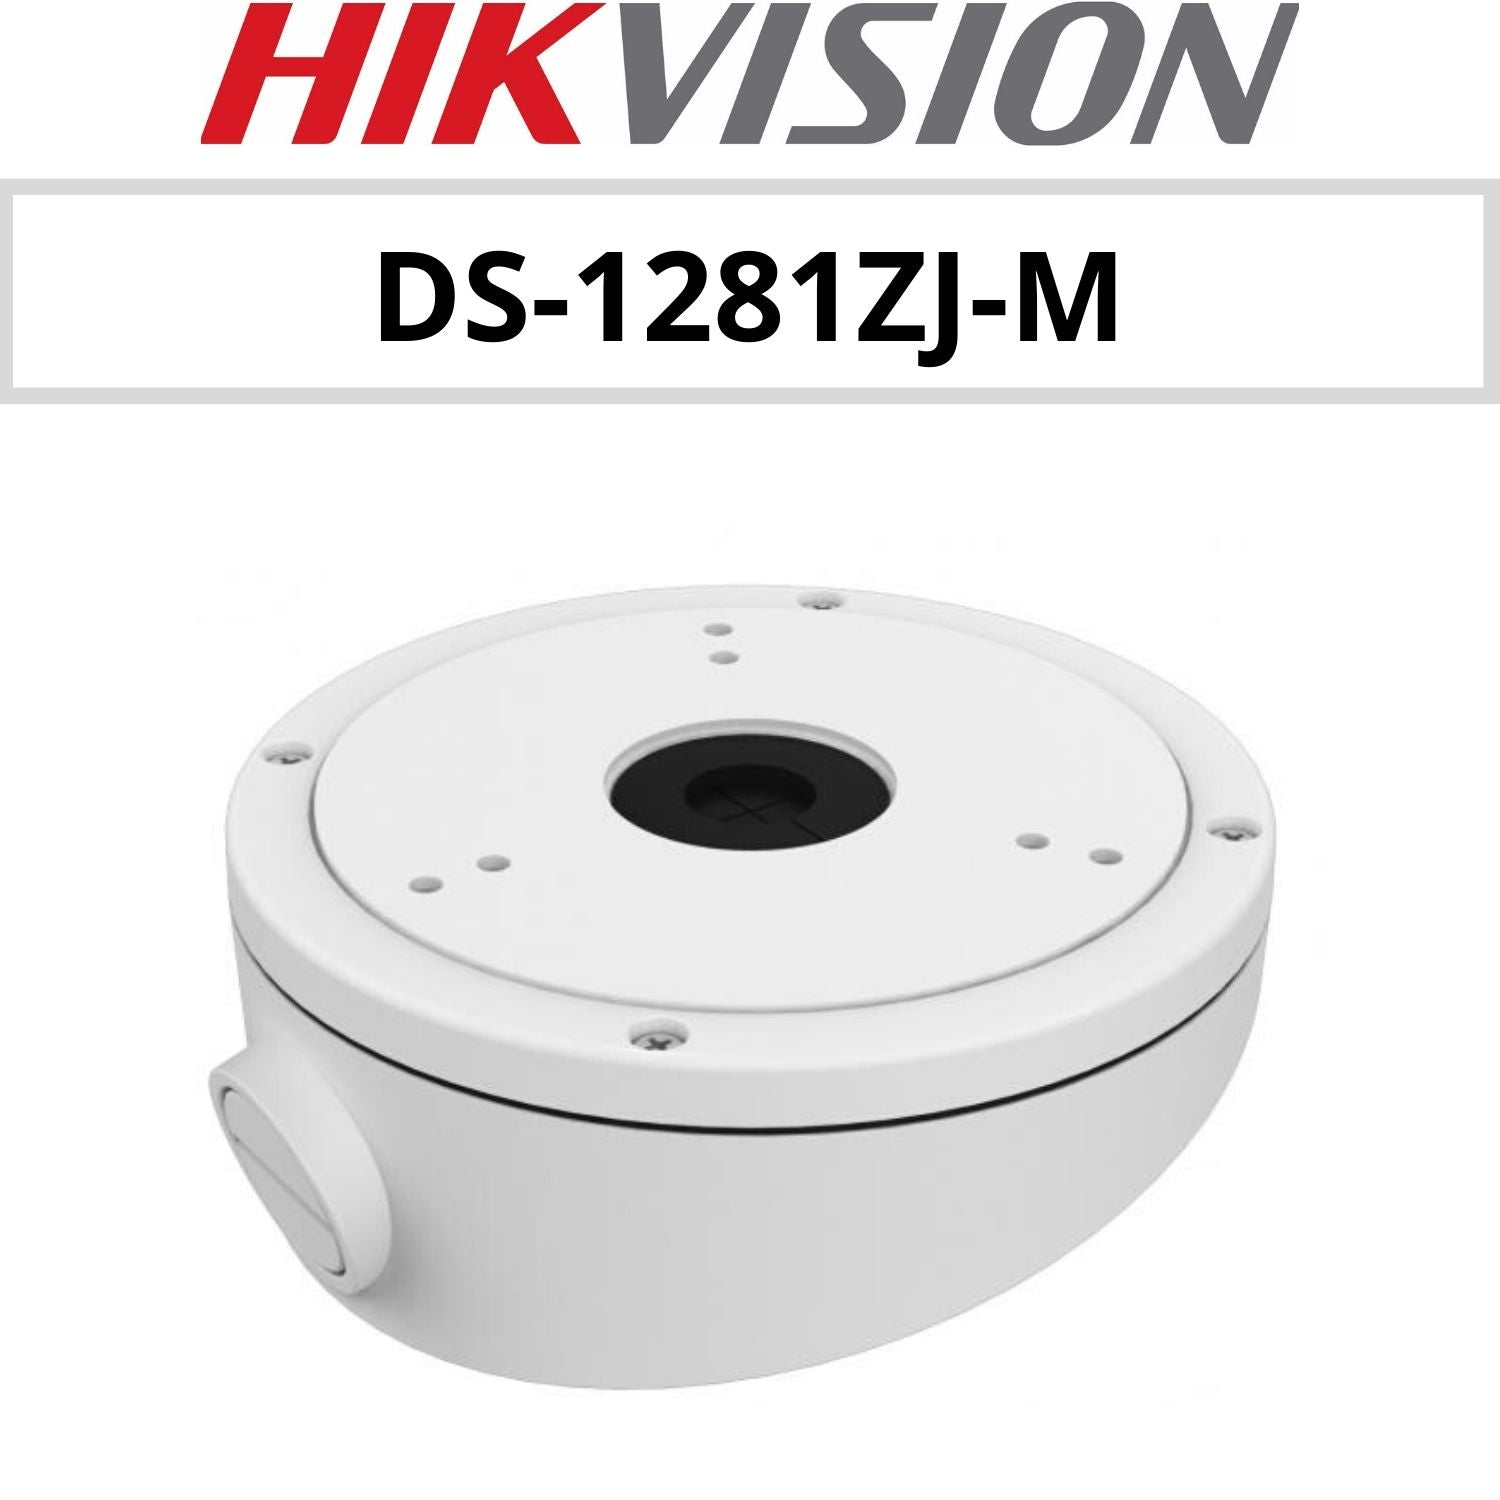 Hikvision DS-1281ZJ-M Inclined Ceiling Mount Bracket